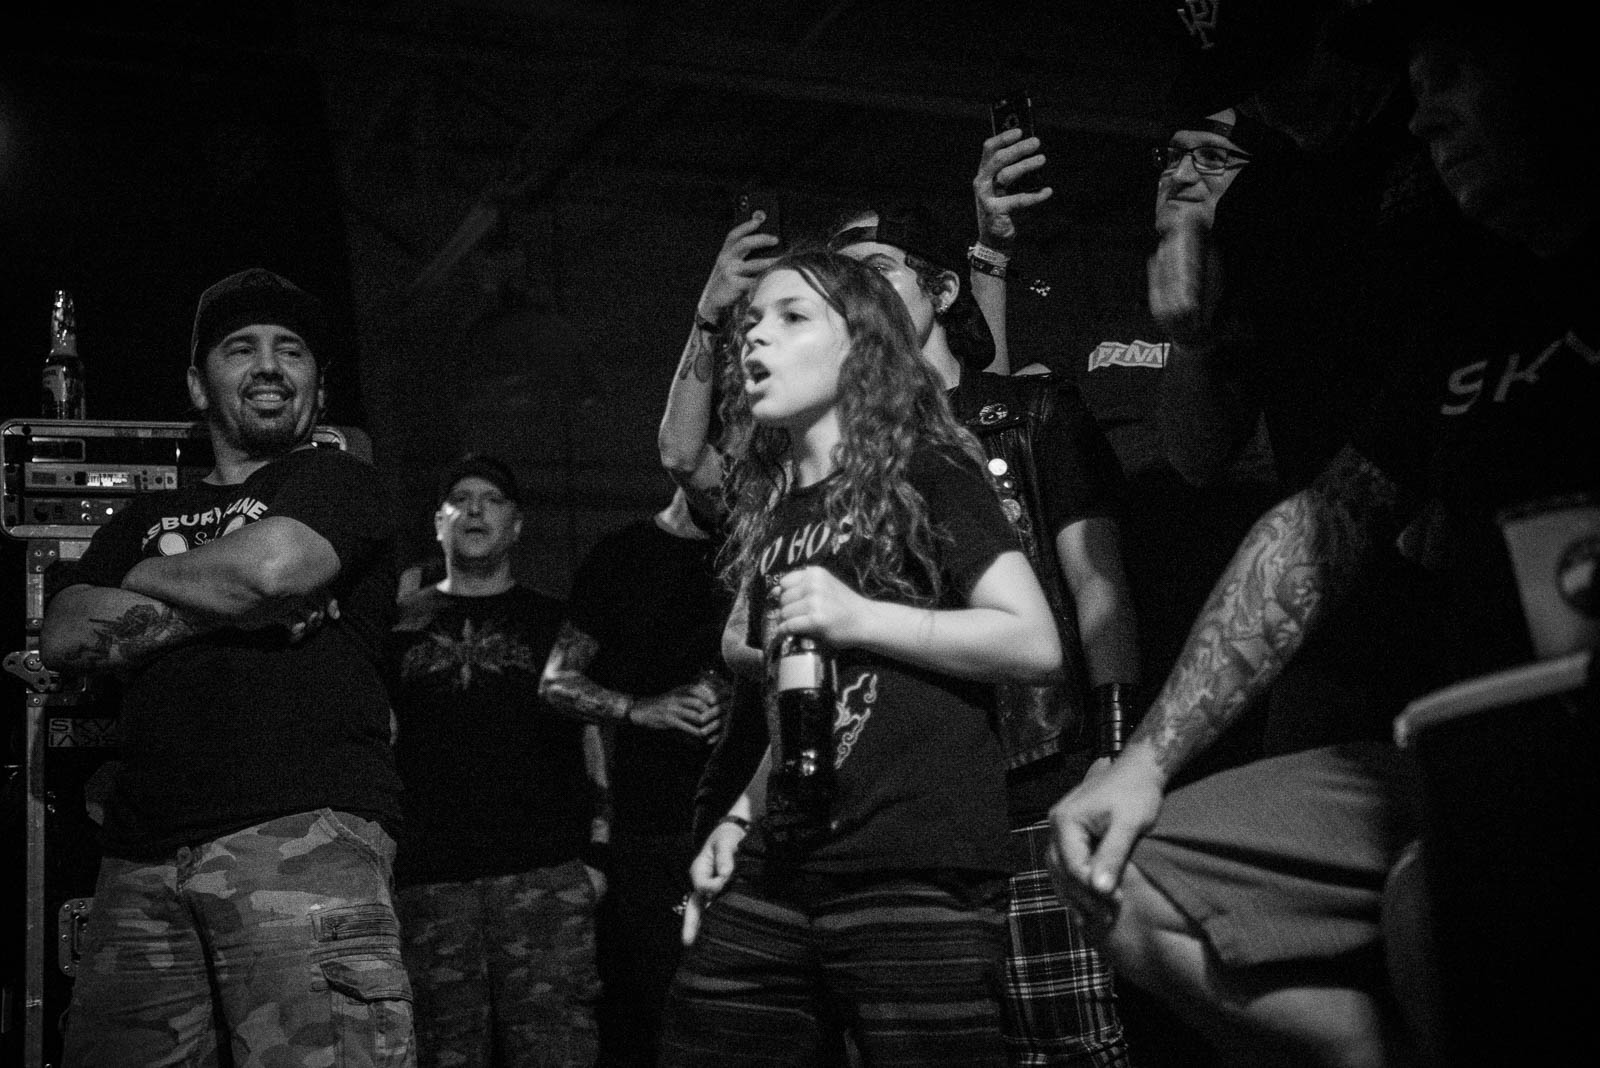 During Pennywise at House of Vans